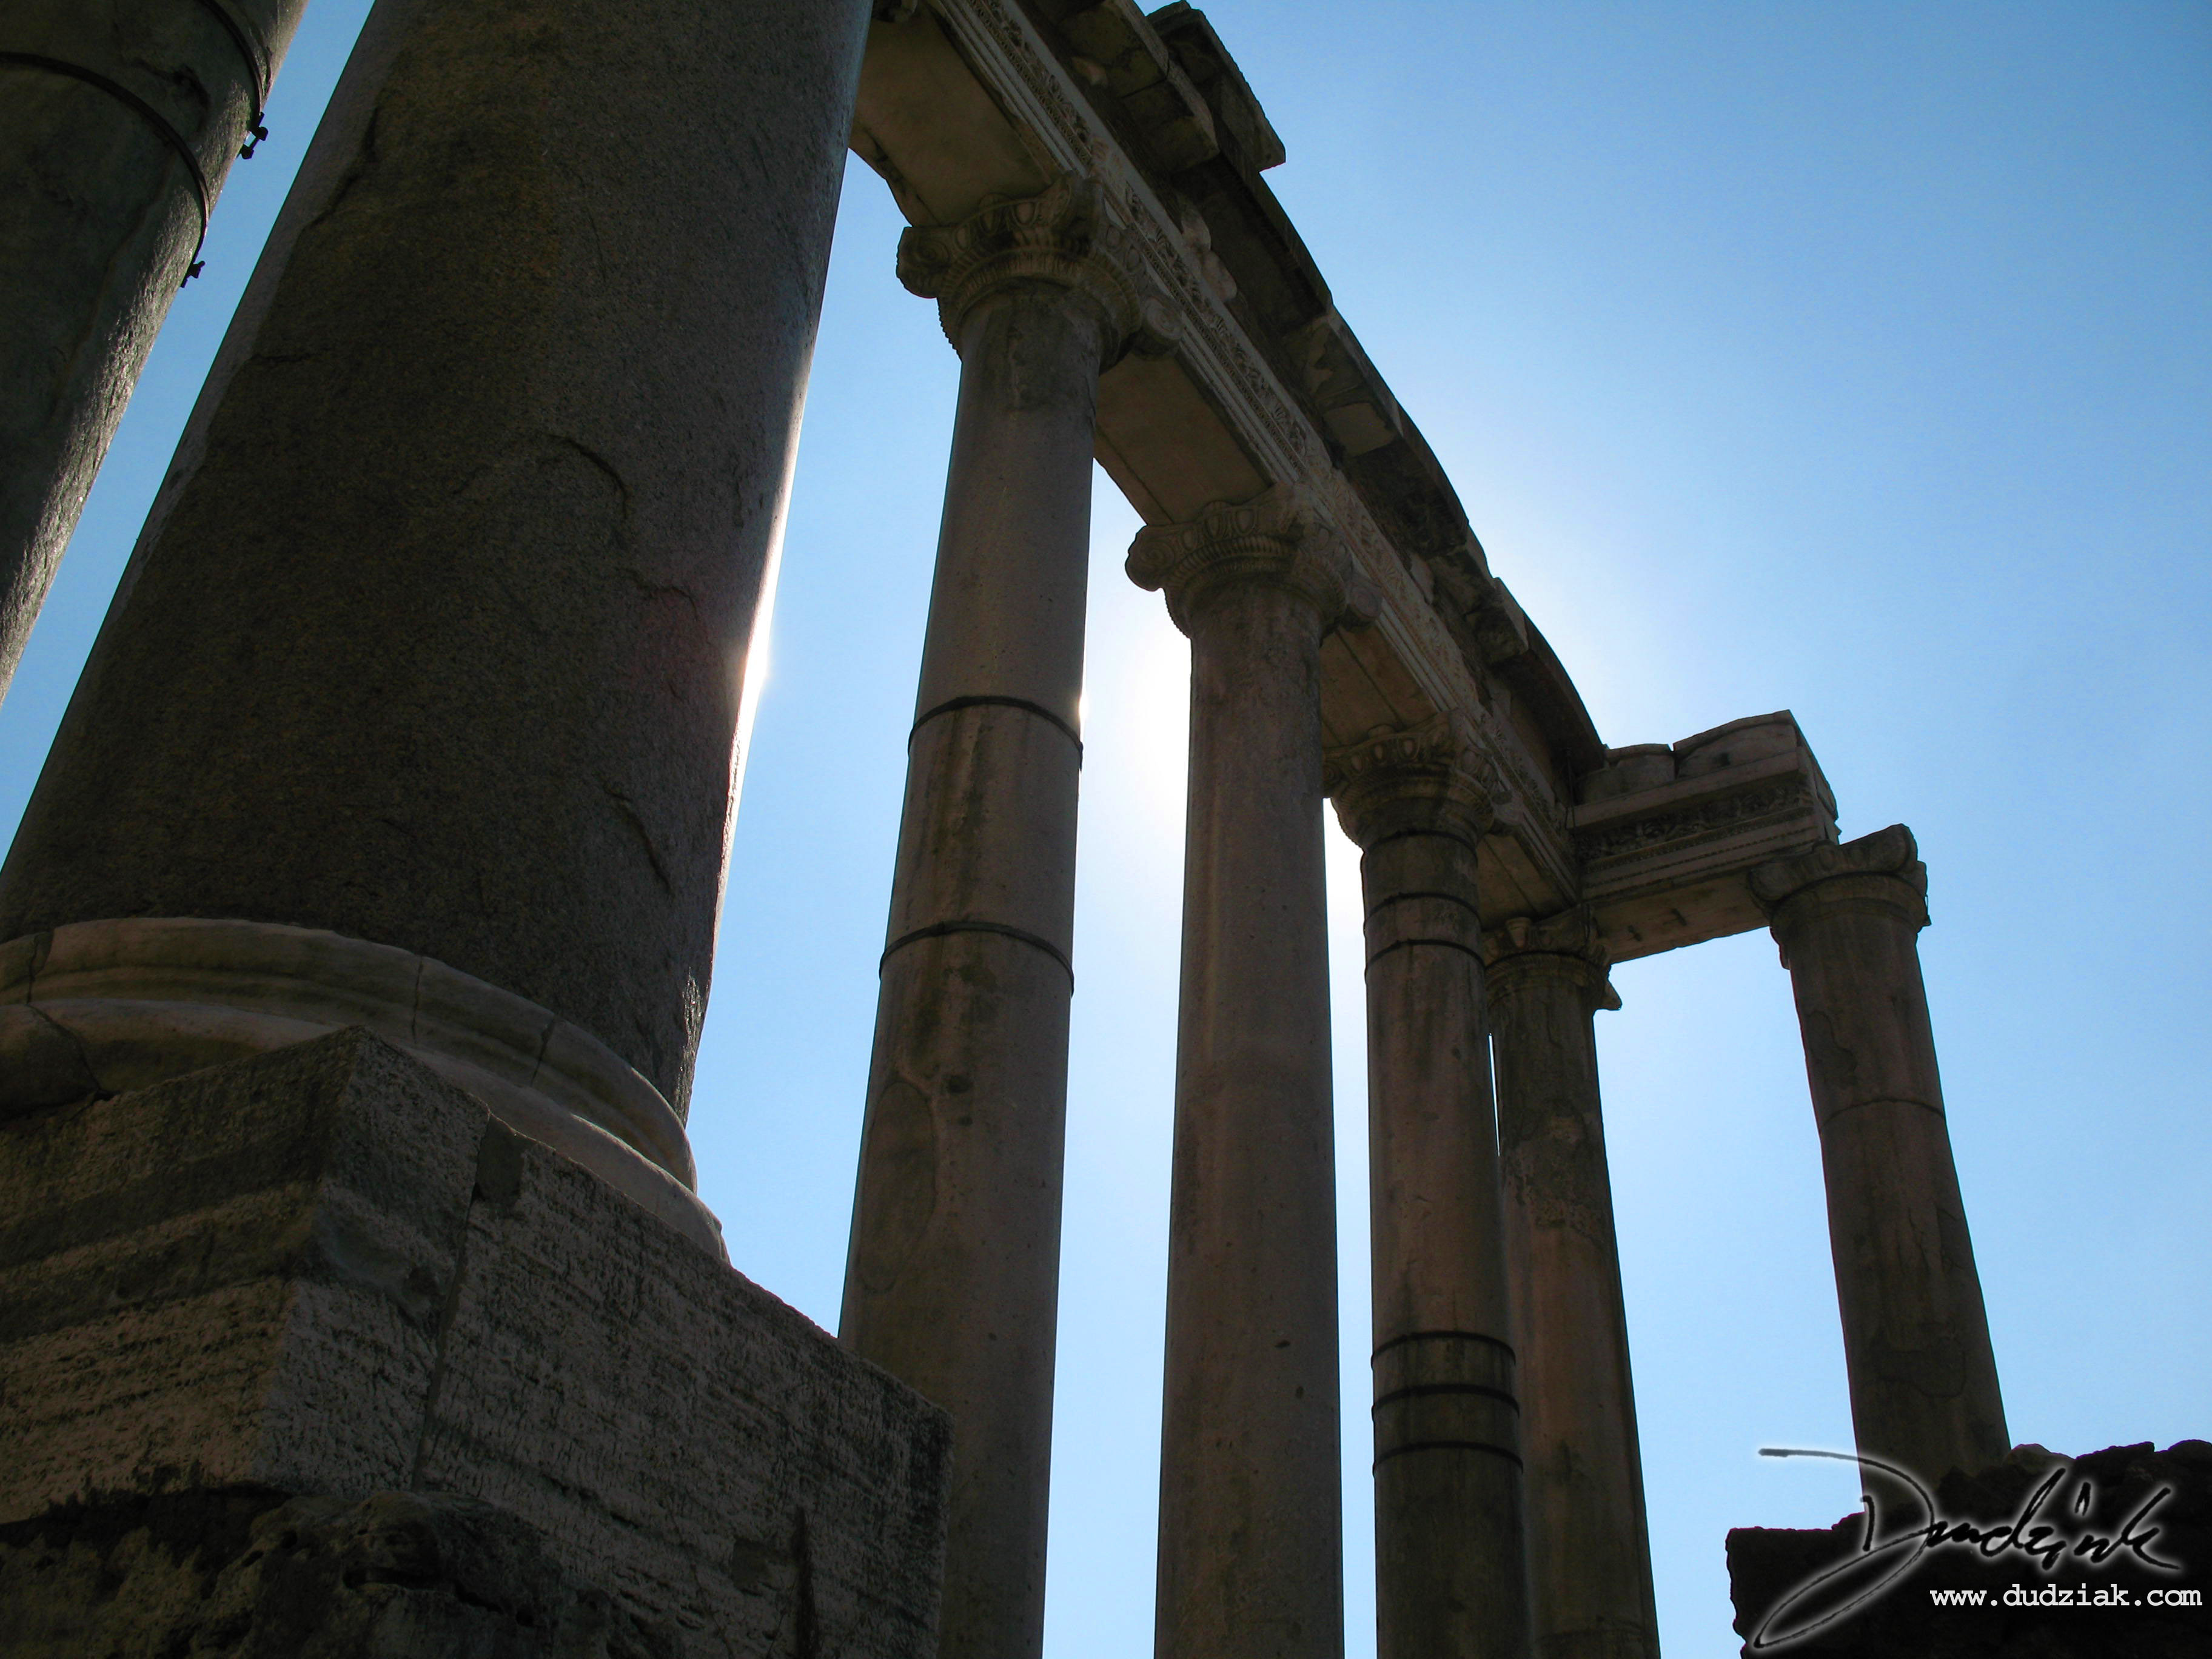 Picture of the remaining columns of the Temple of Saturn in the Roman Forum in Rome, Italy.